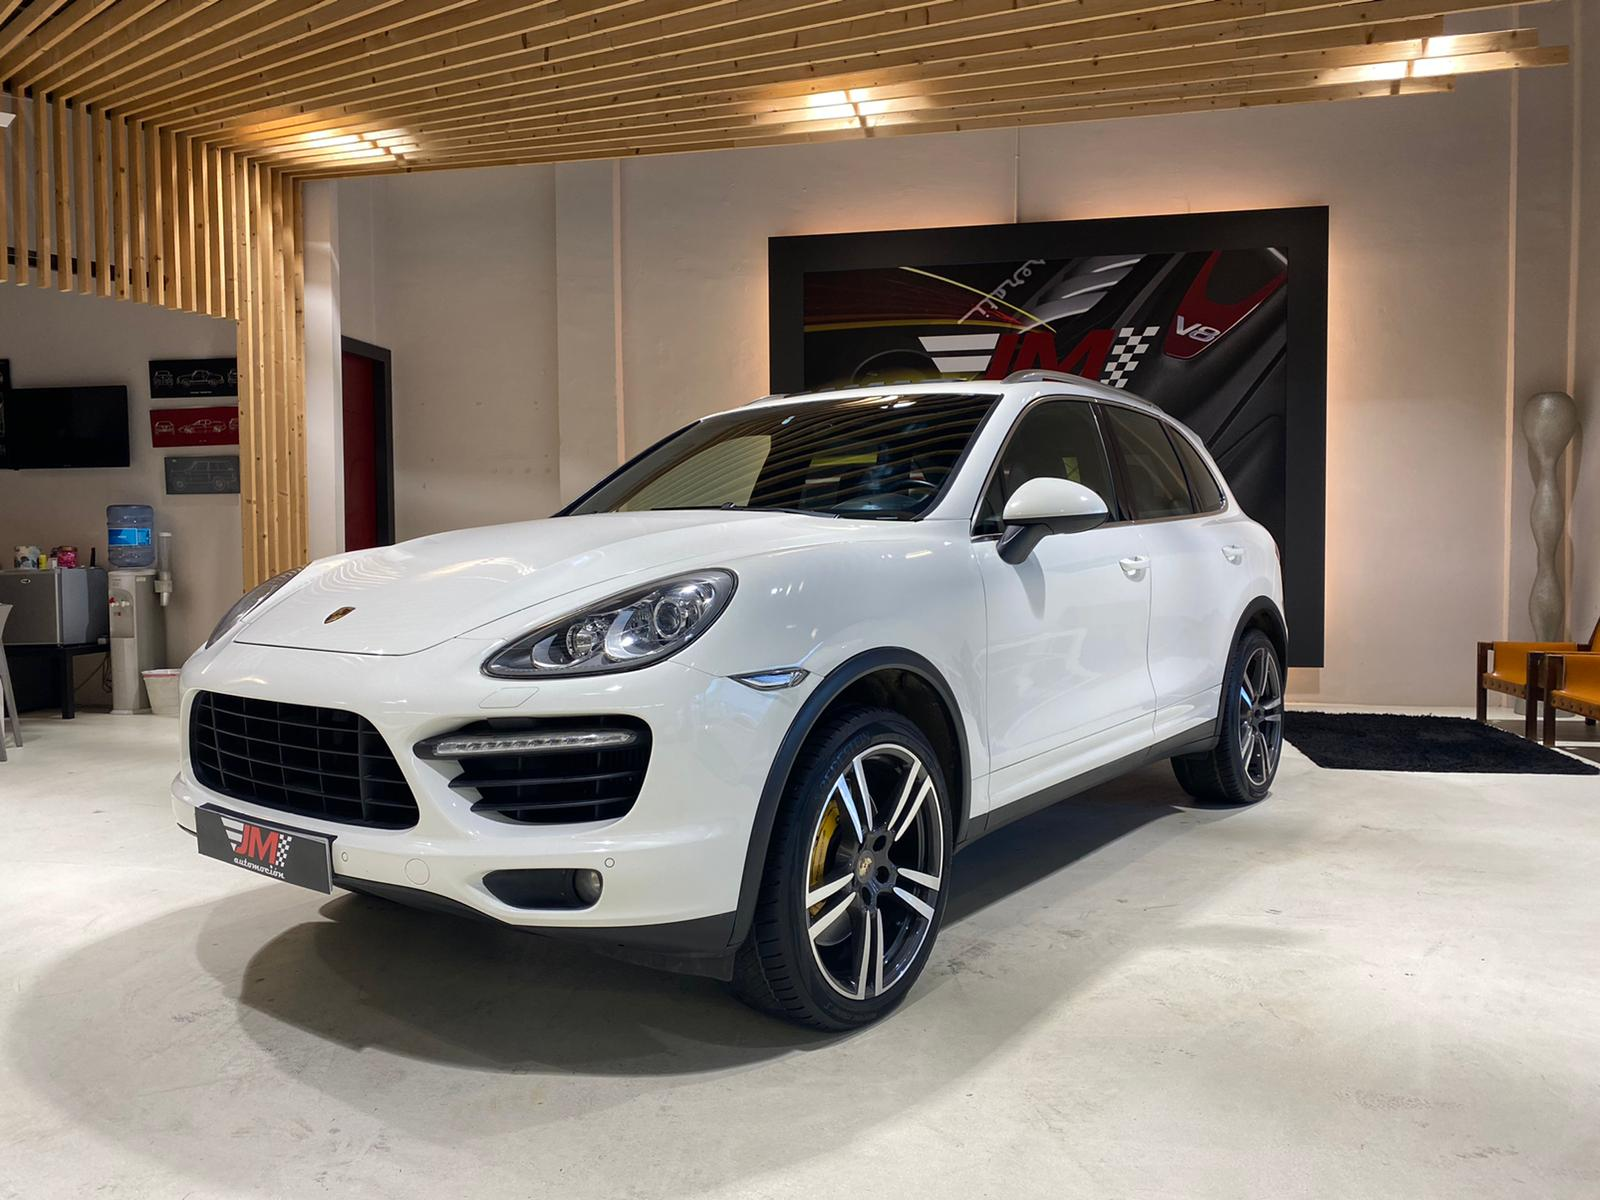 PORSCHE CAYENNE TURBO AUT. NACIONAL, IVA DEDUCIBLE